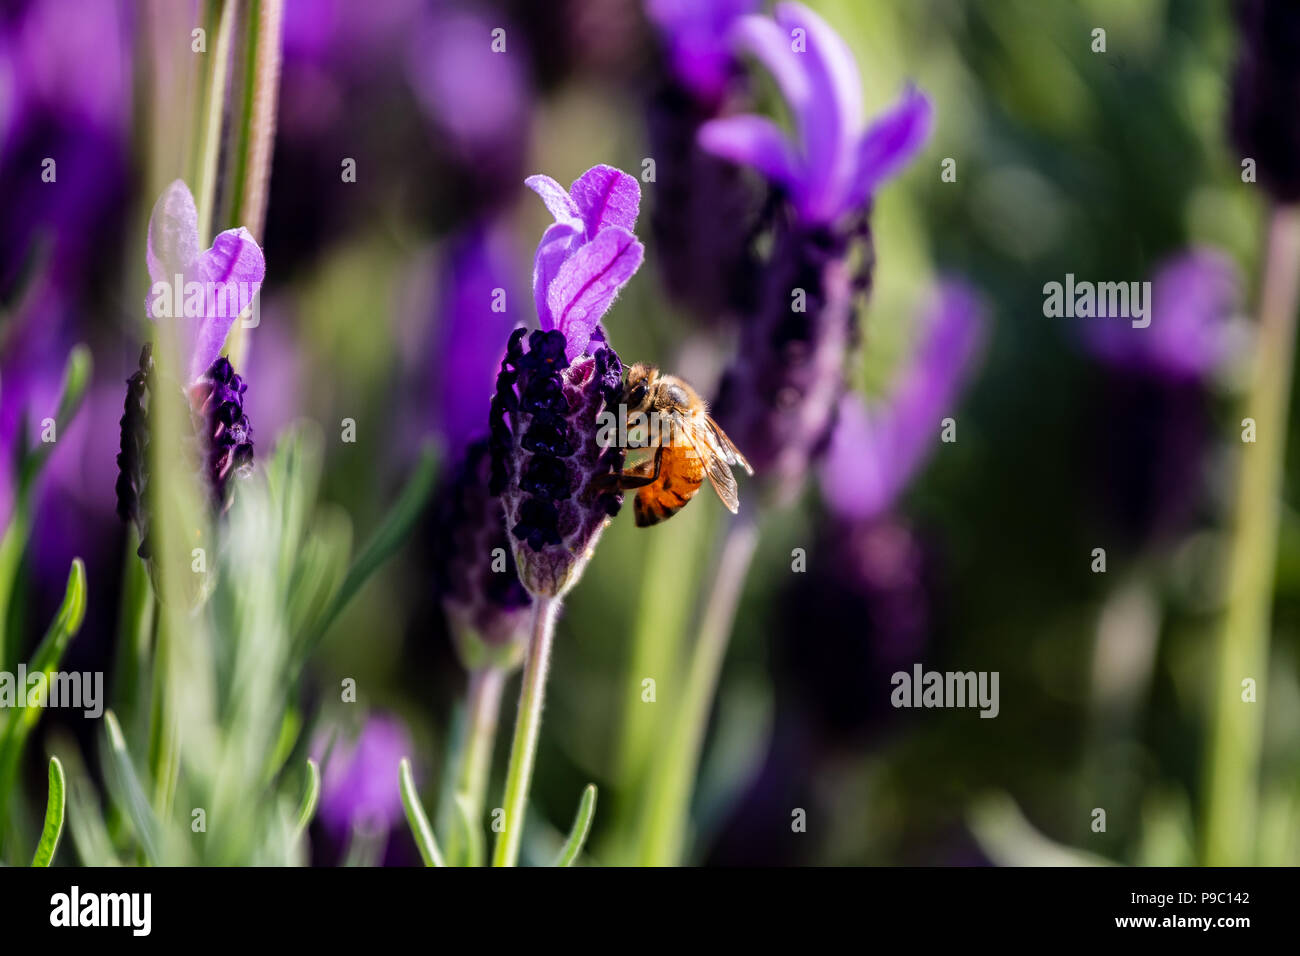 a honey bee visits budding rosemary flowers in a park in Yokohama - Stock Image